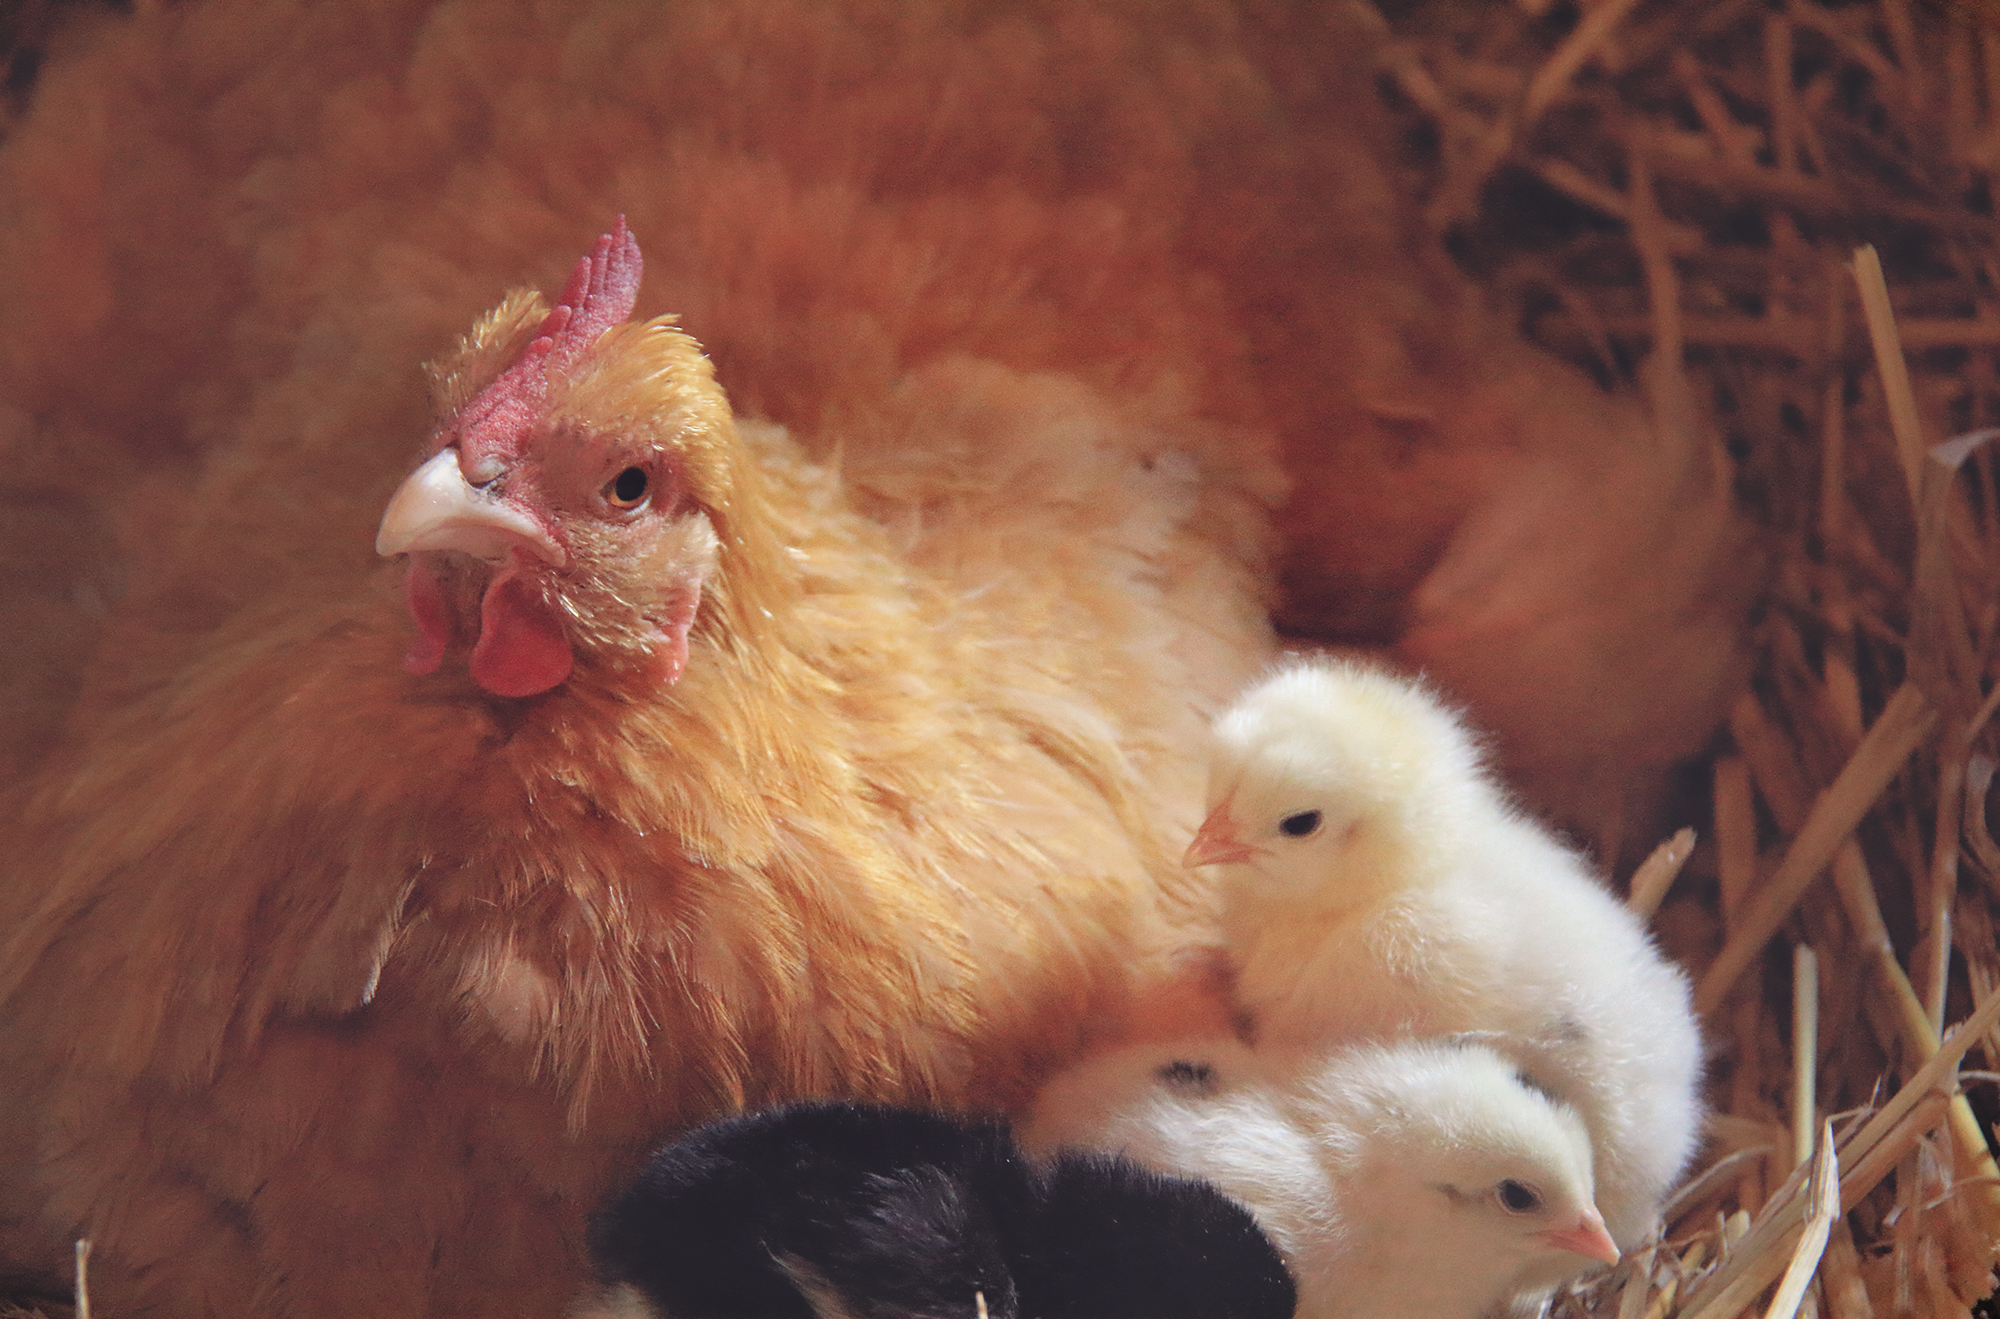 Hatching Chicks with Mother Hens